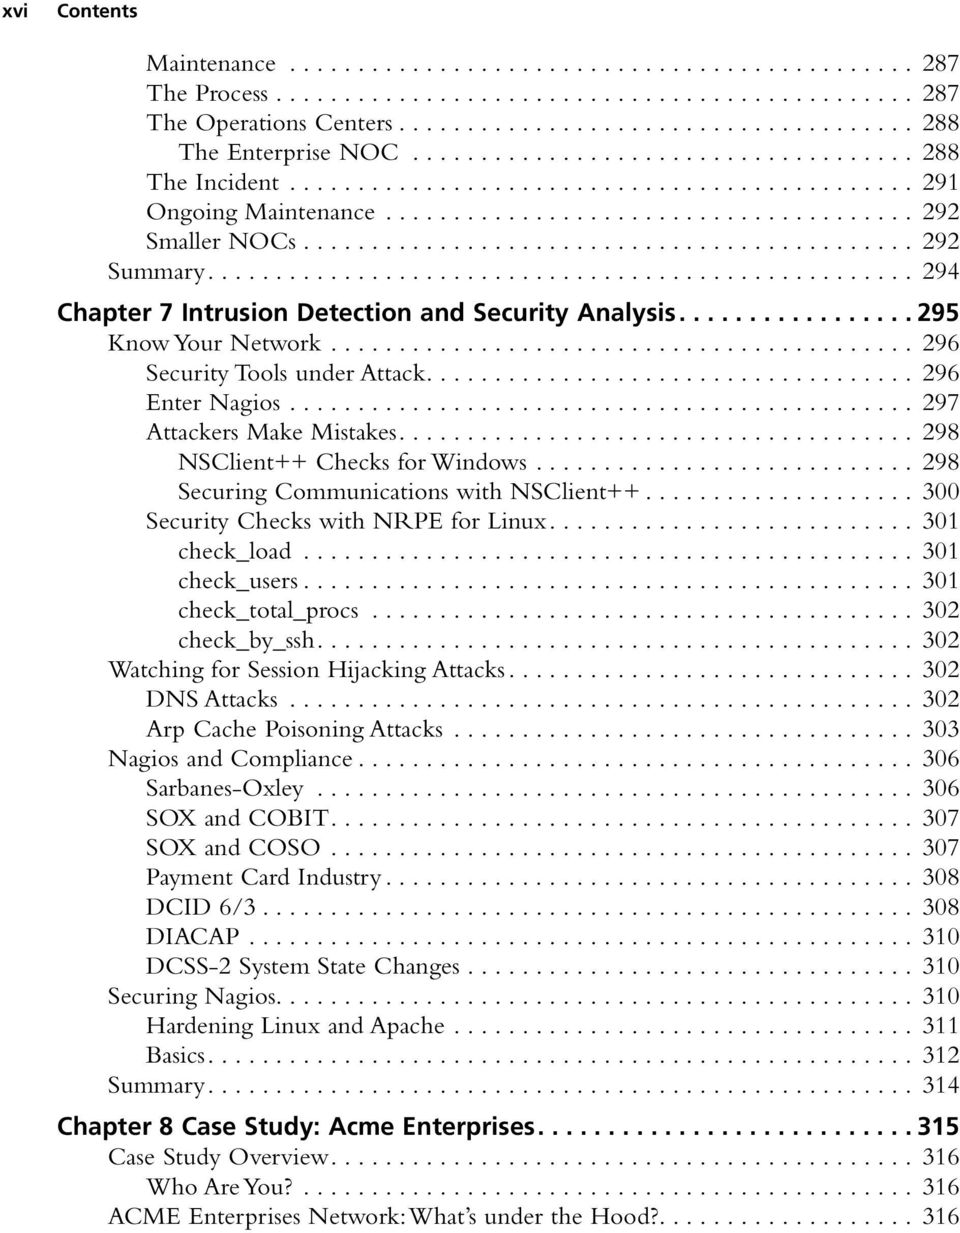 ................................................... 294 Chapter 7 Intrusion Detection and Security Analysis................. 295 Know Your Network............................................ 296 Security Tools under Attack.